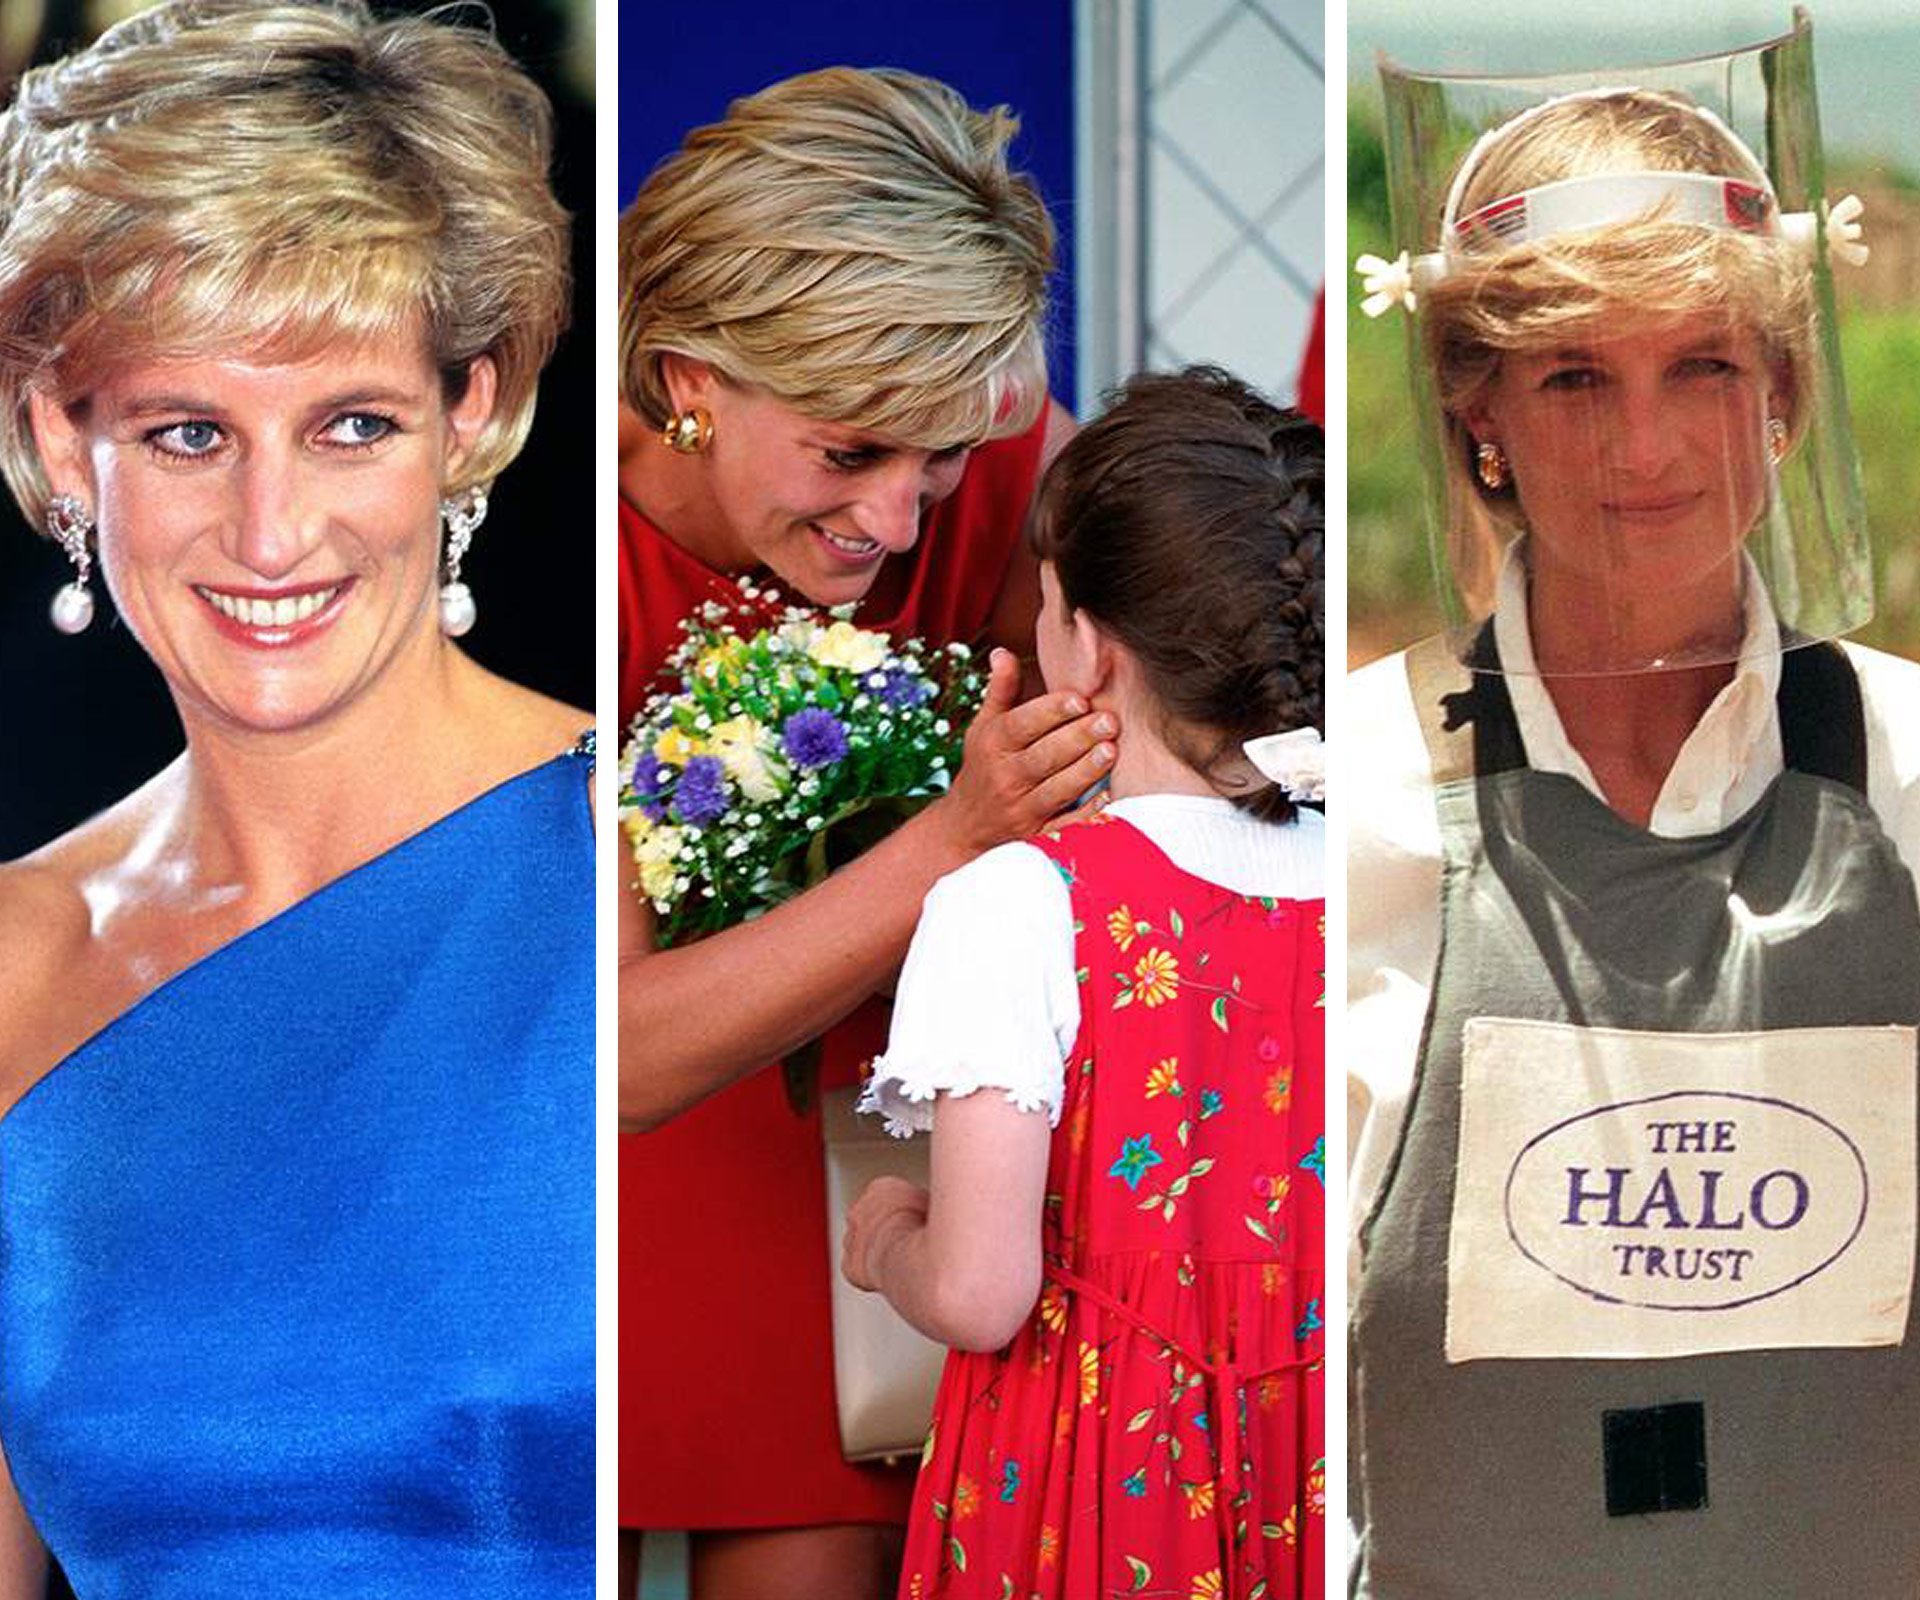 Princess Diana's friend shares candid picture of the royal on Twitter